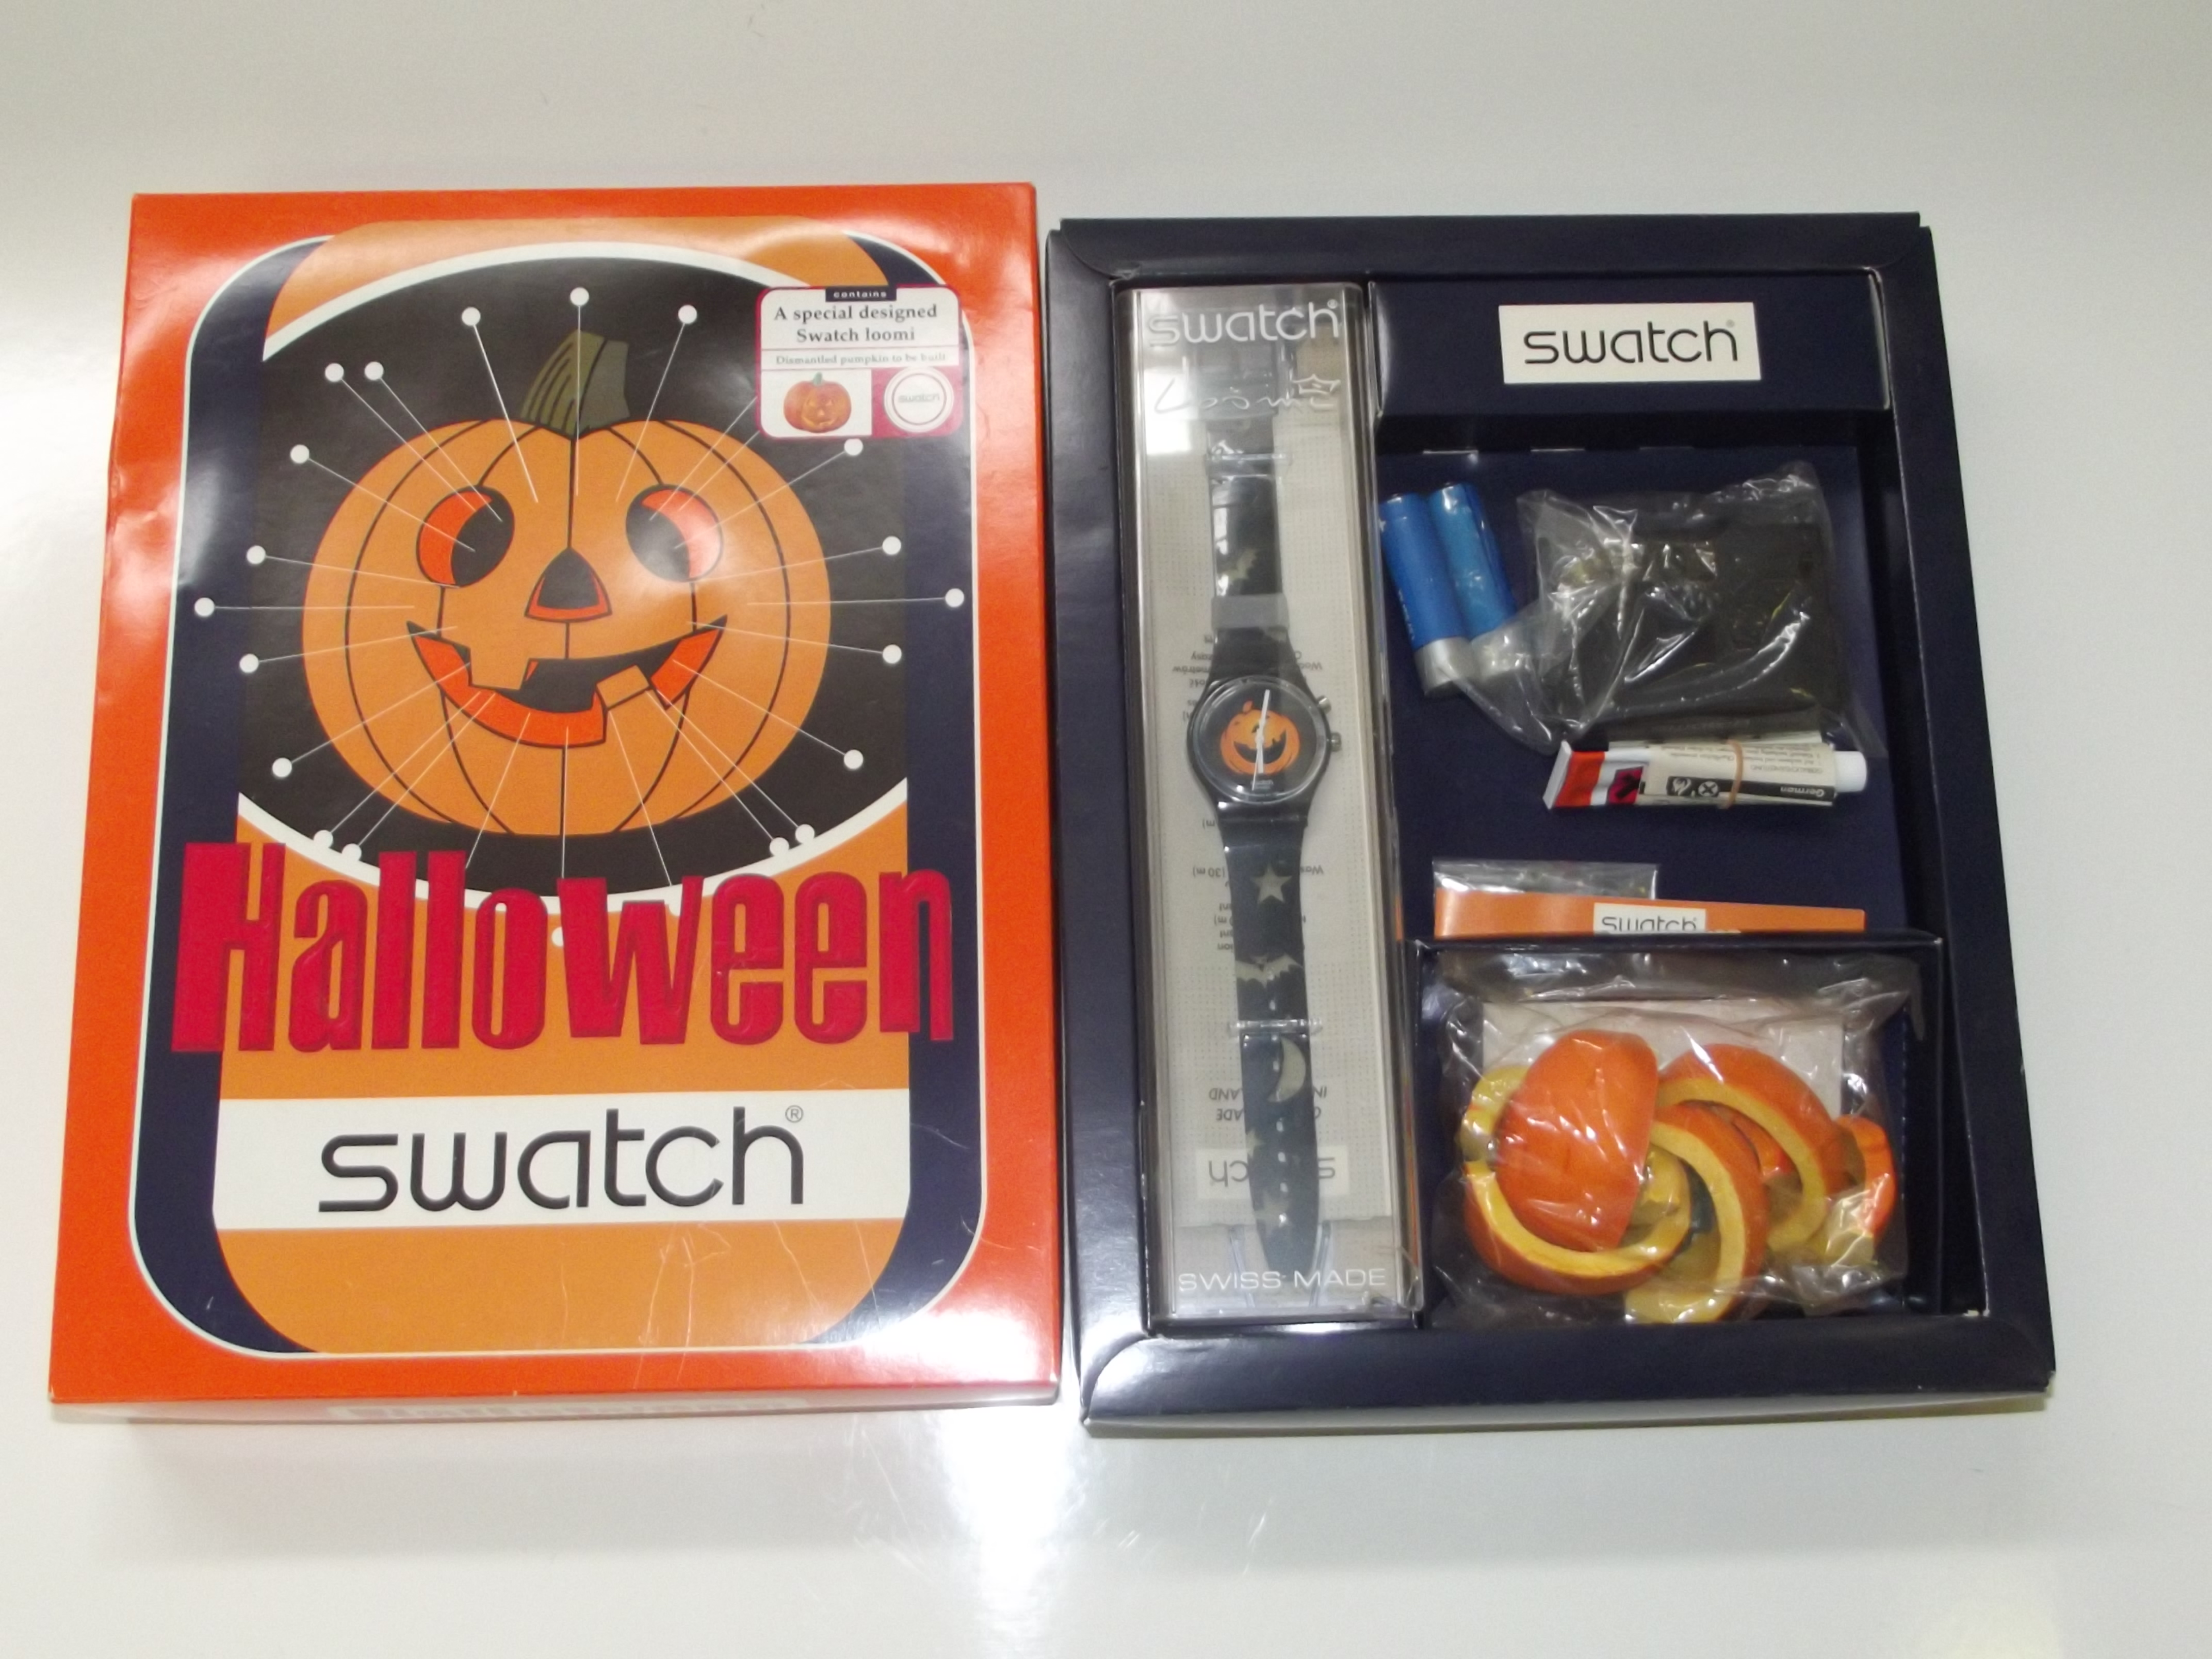 Halloween Swatch watch, a special designed Swatch loomi. With ...